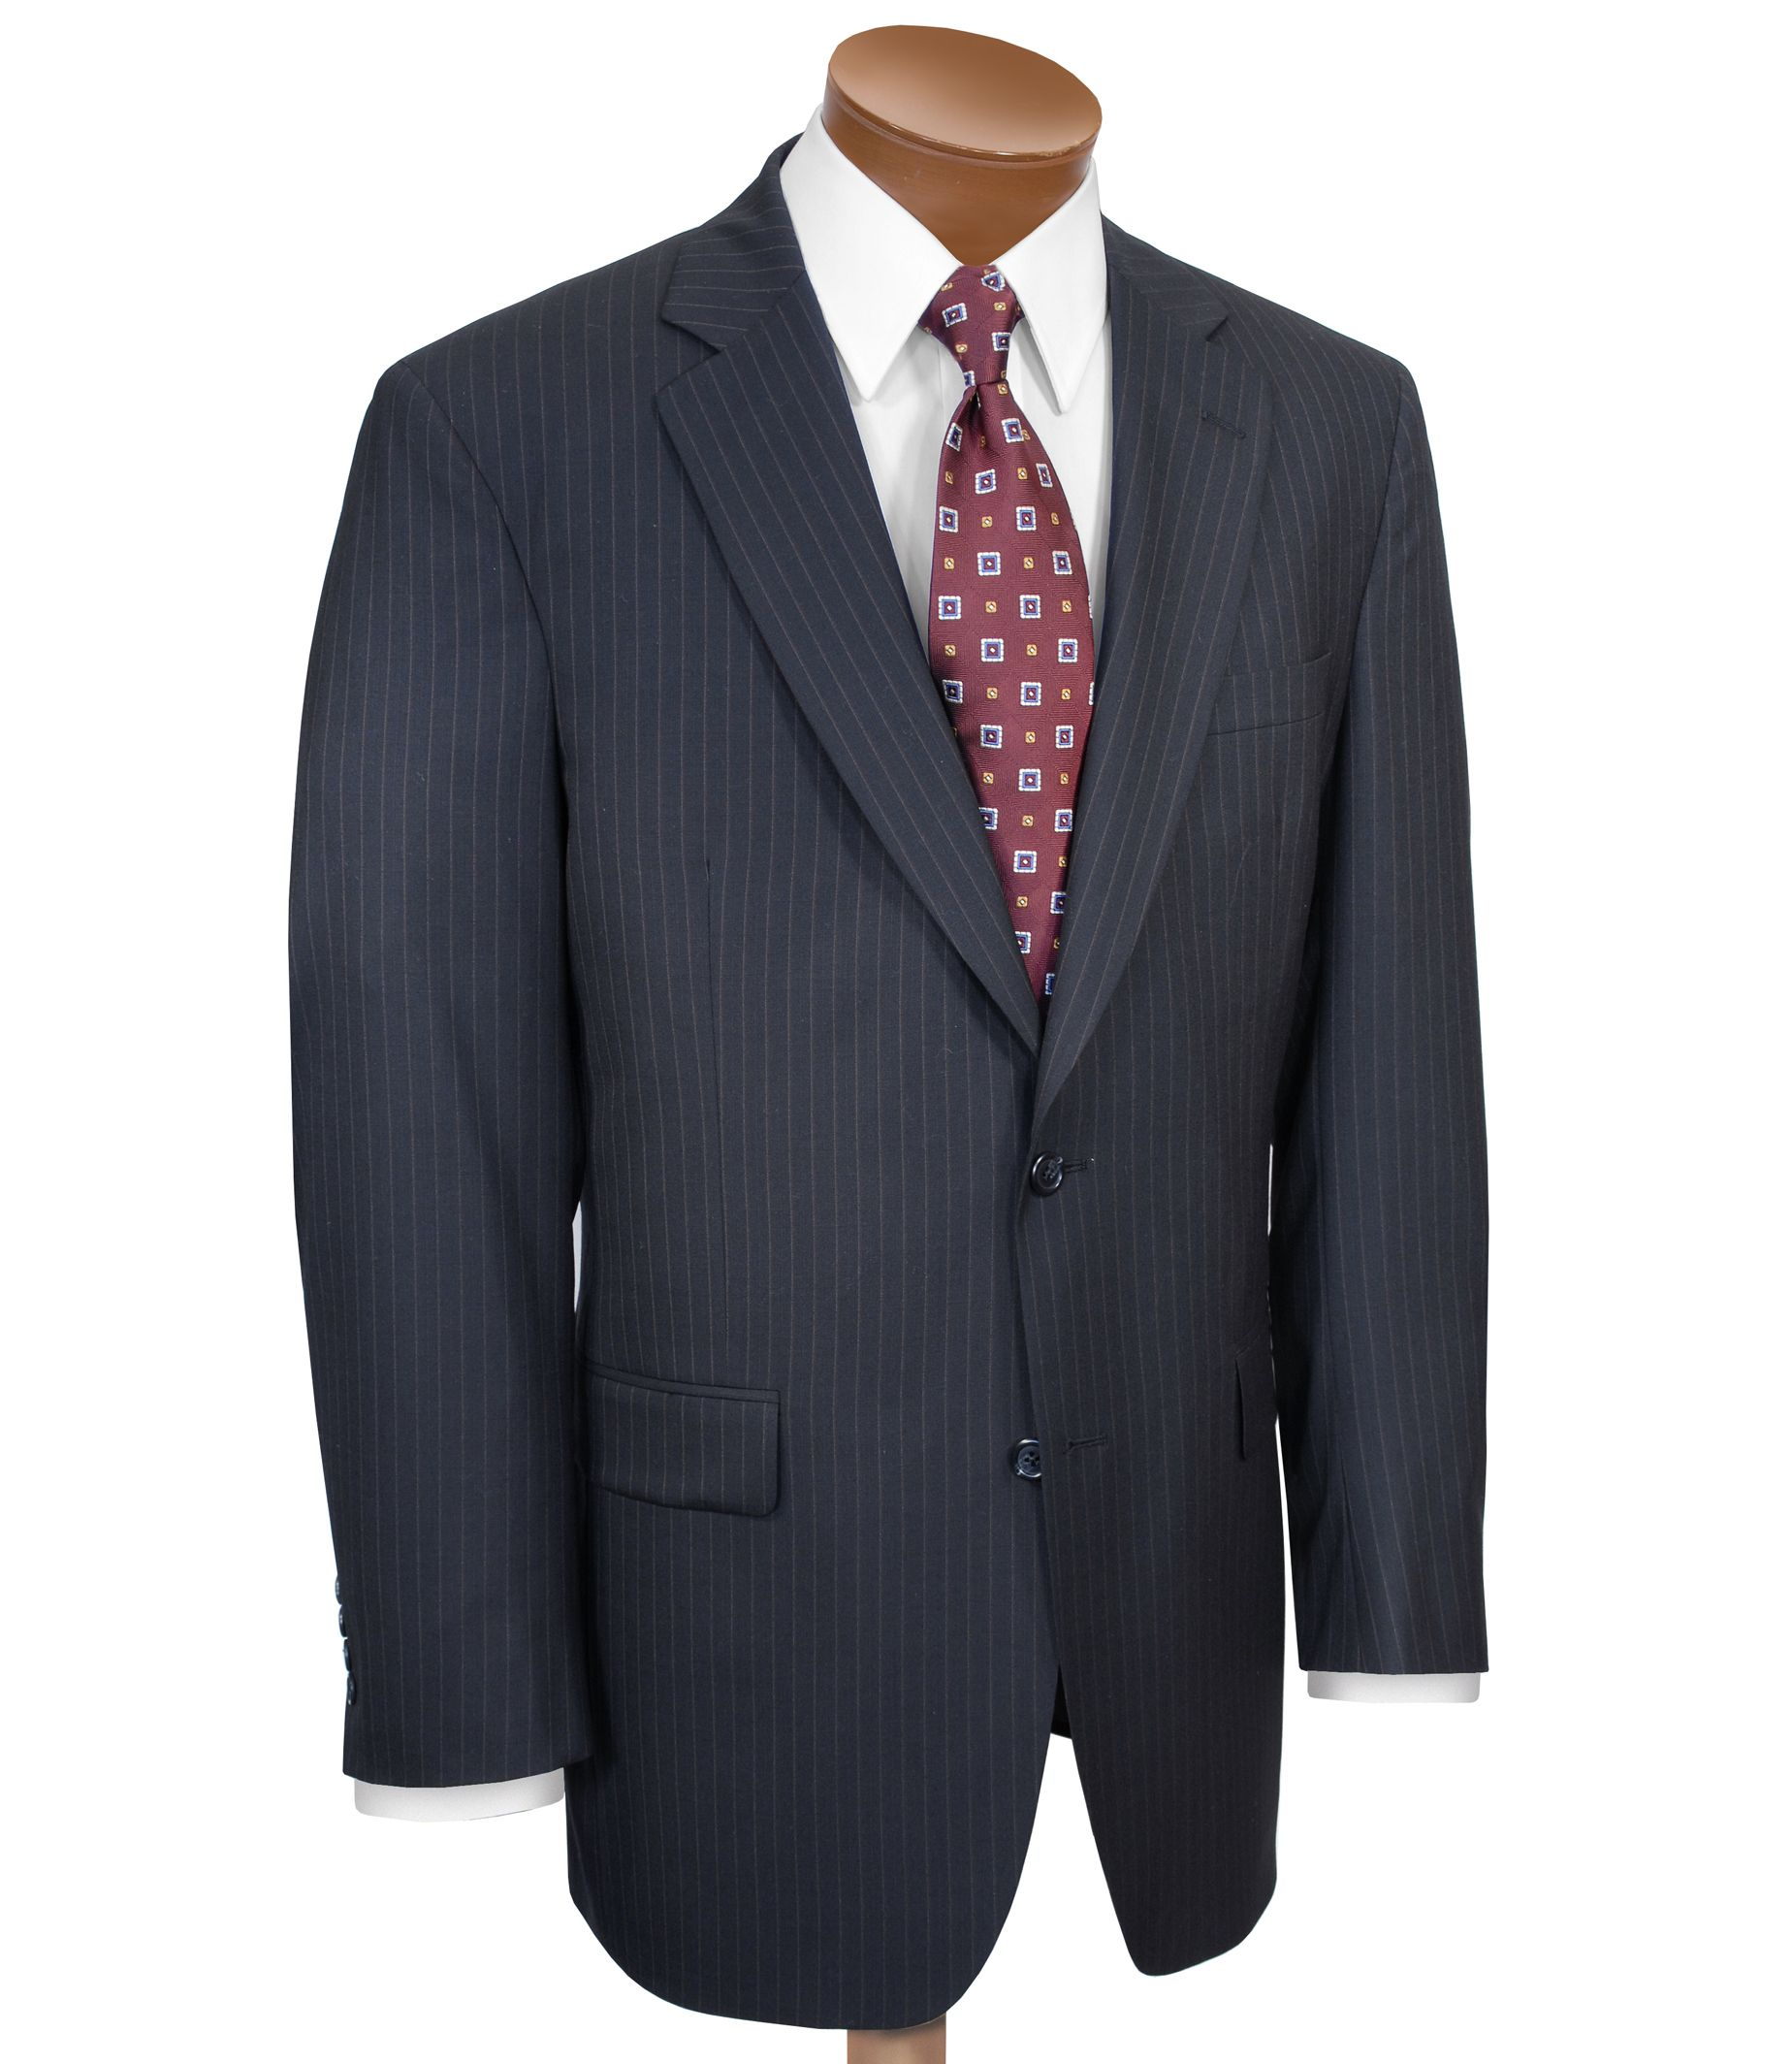 Jos A Bank Suit Quality Reviews